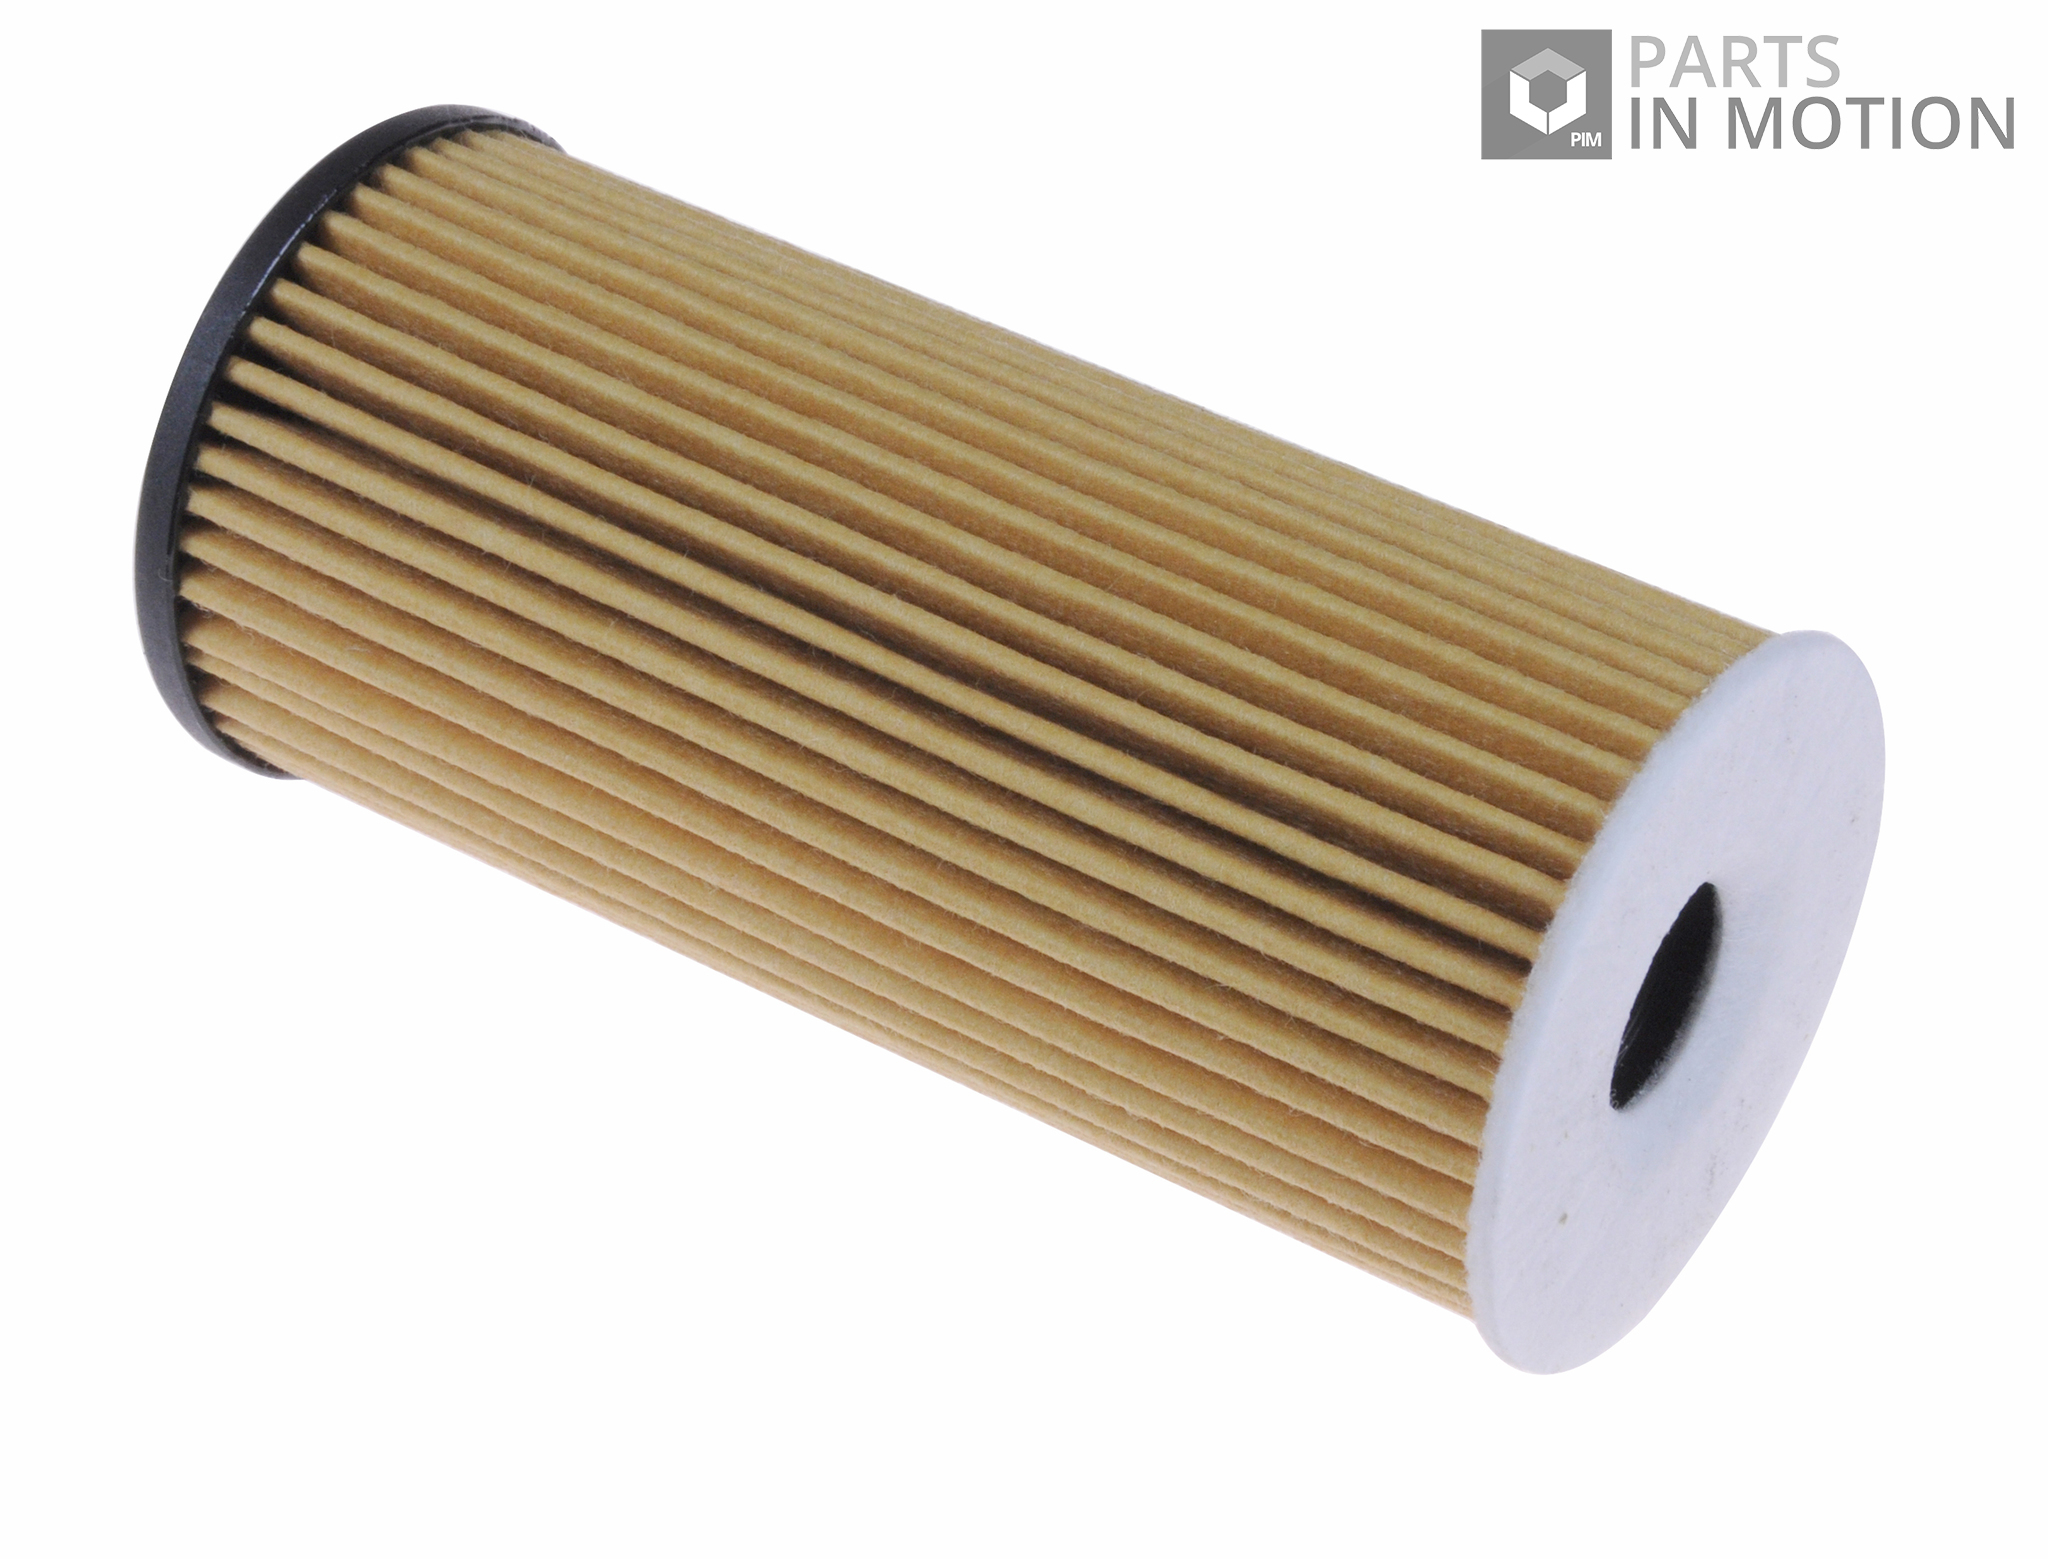 Oil Filter fits BMW 335 F30 F34 3 0D 2013 on N57D30B ADL